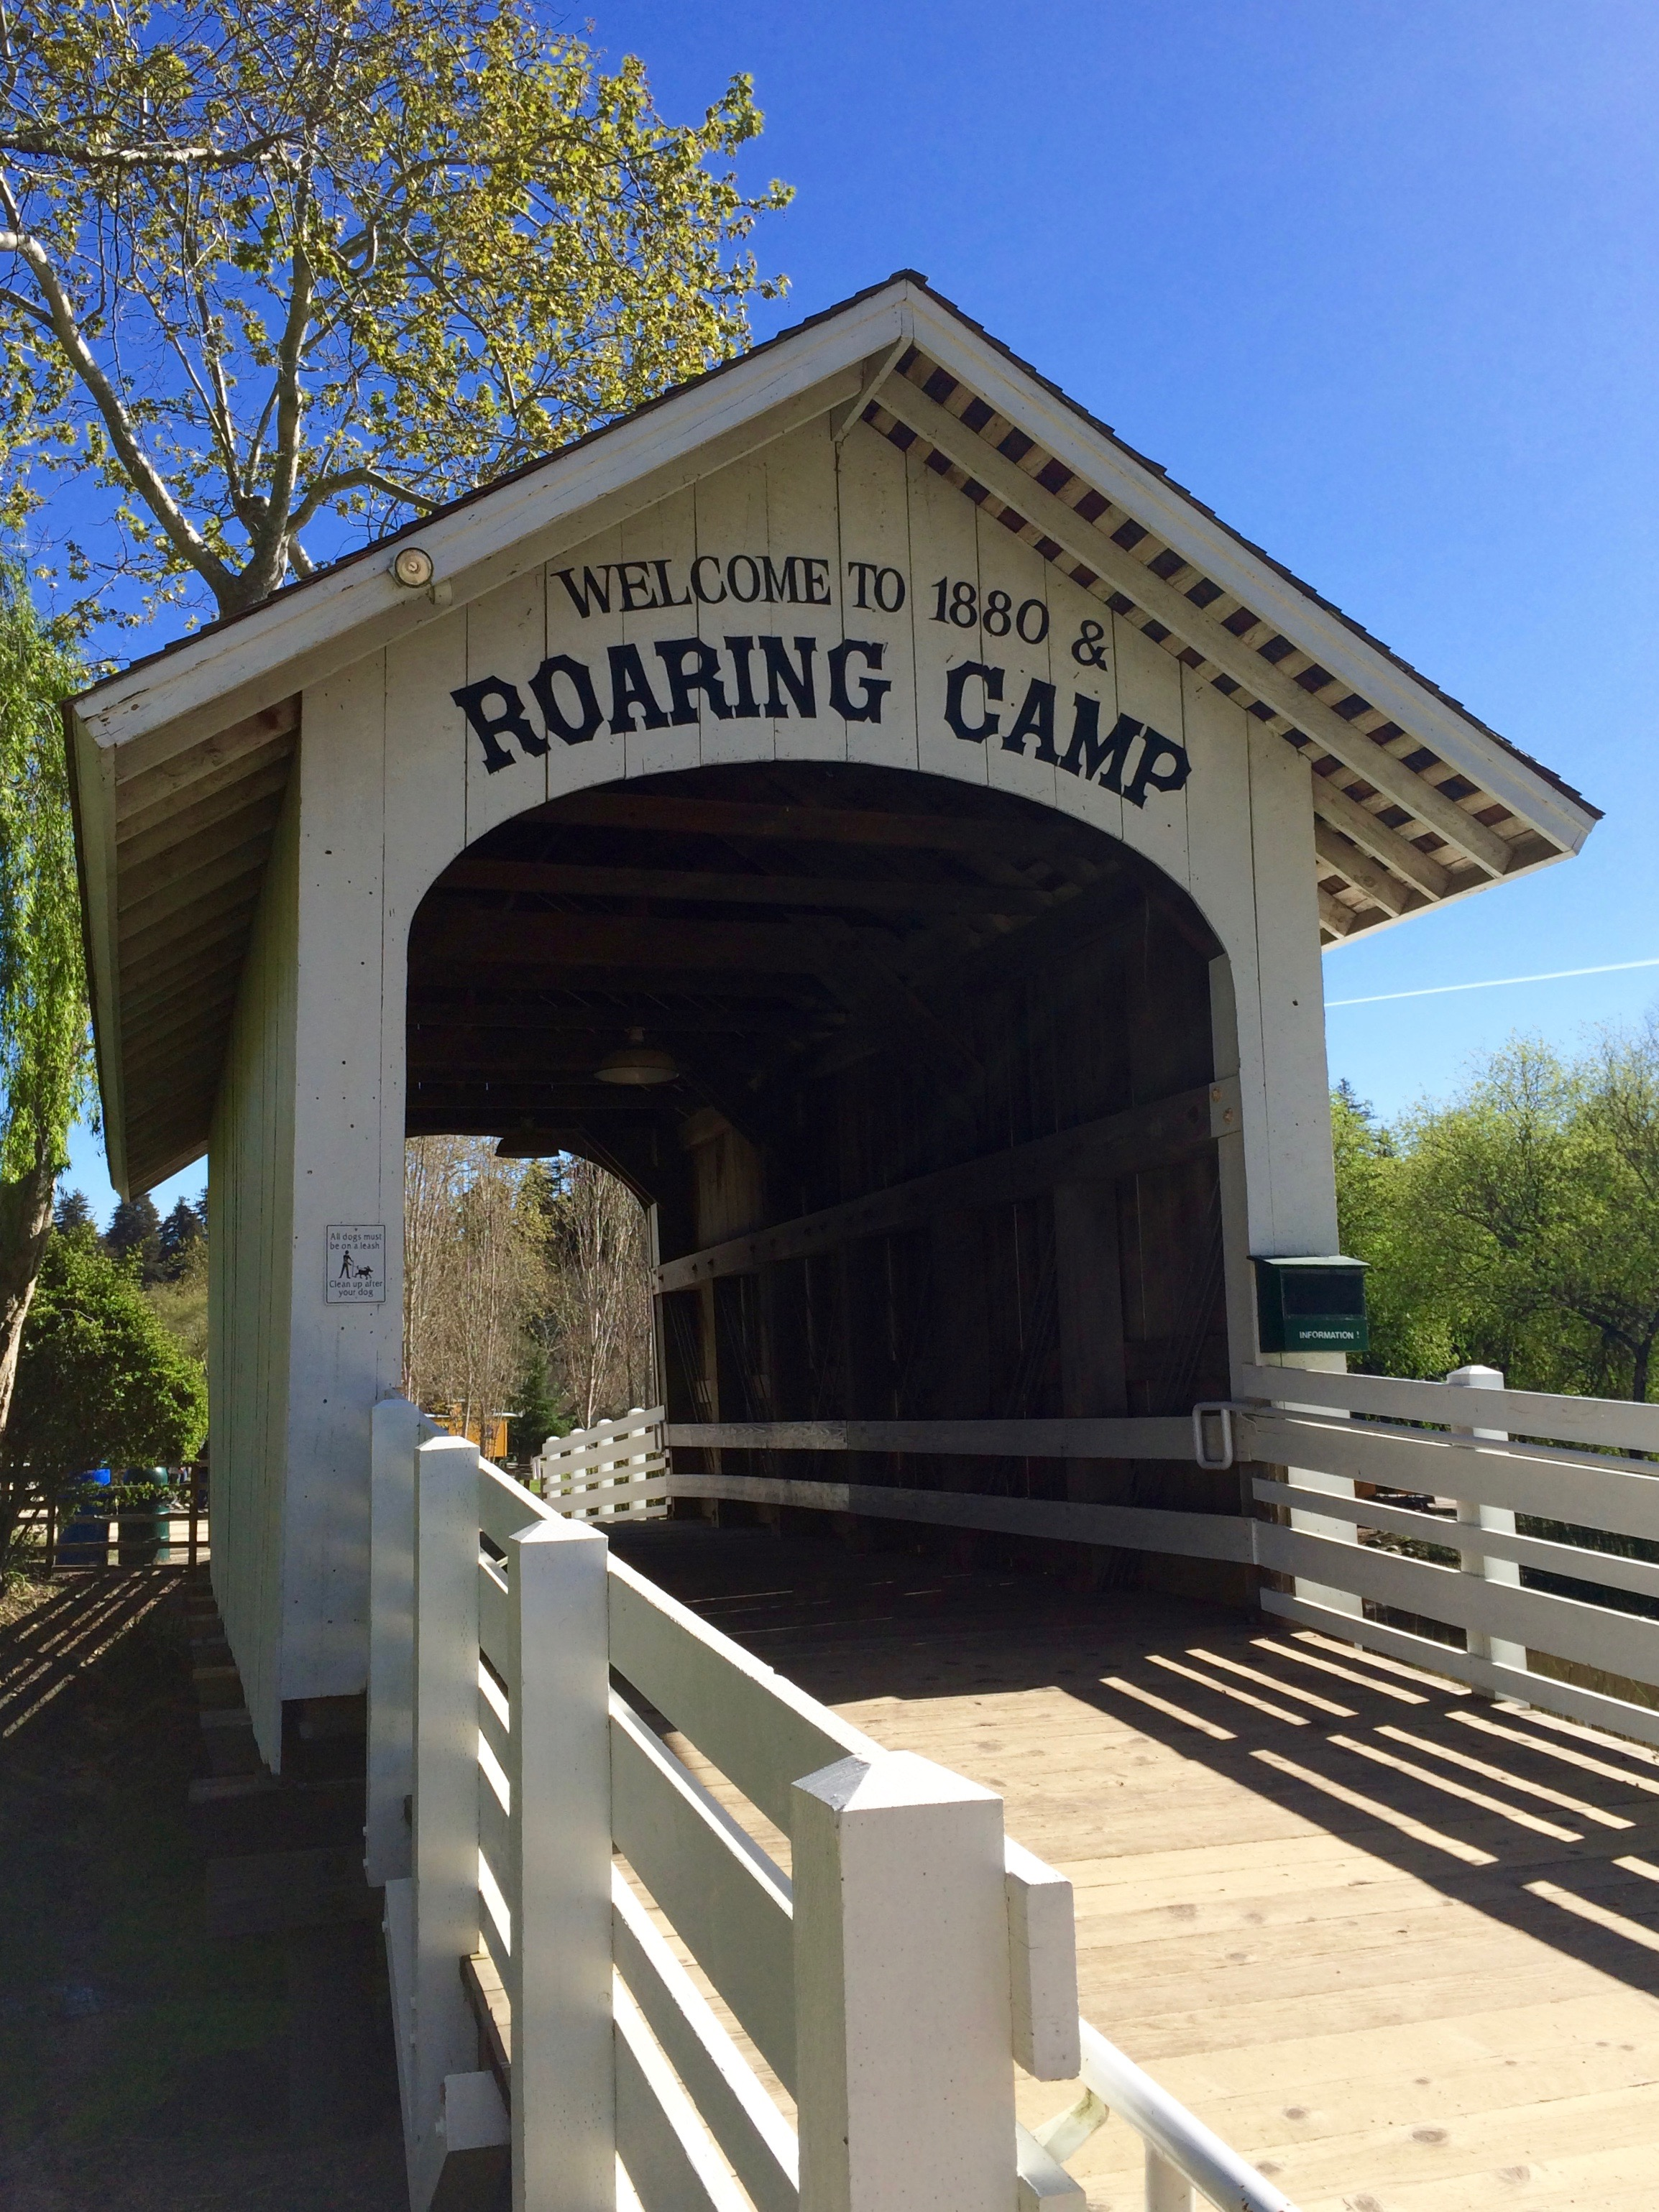 Welcome to Roaring Camp Railroads - Simple Sojourns